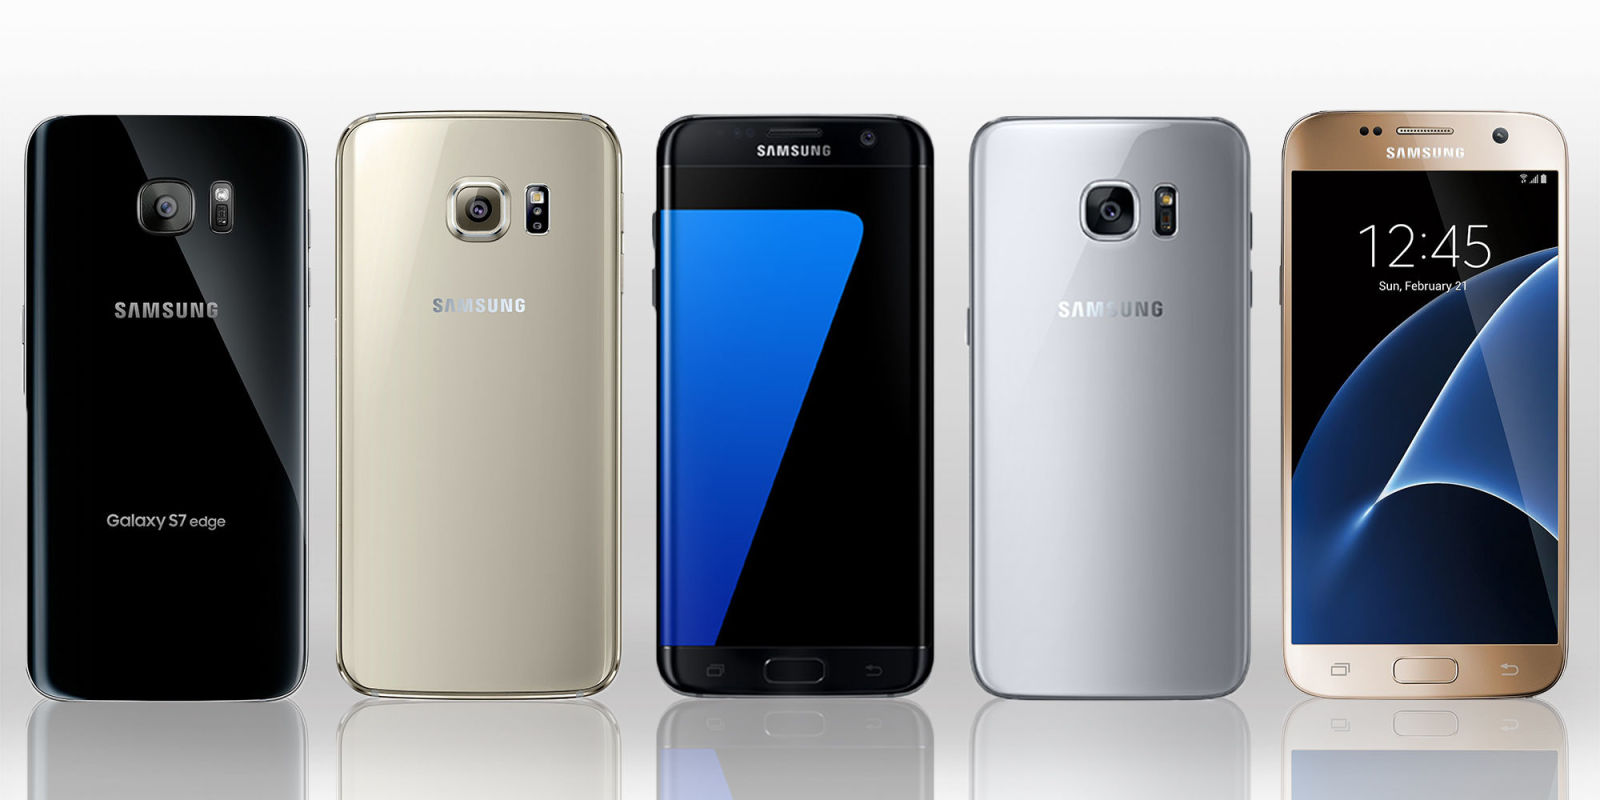 Phone Best Samsung Android Phones 9 best samsung phones of 2017 top rated galaxy smartphone reviews